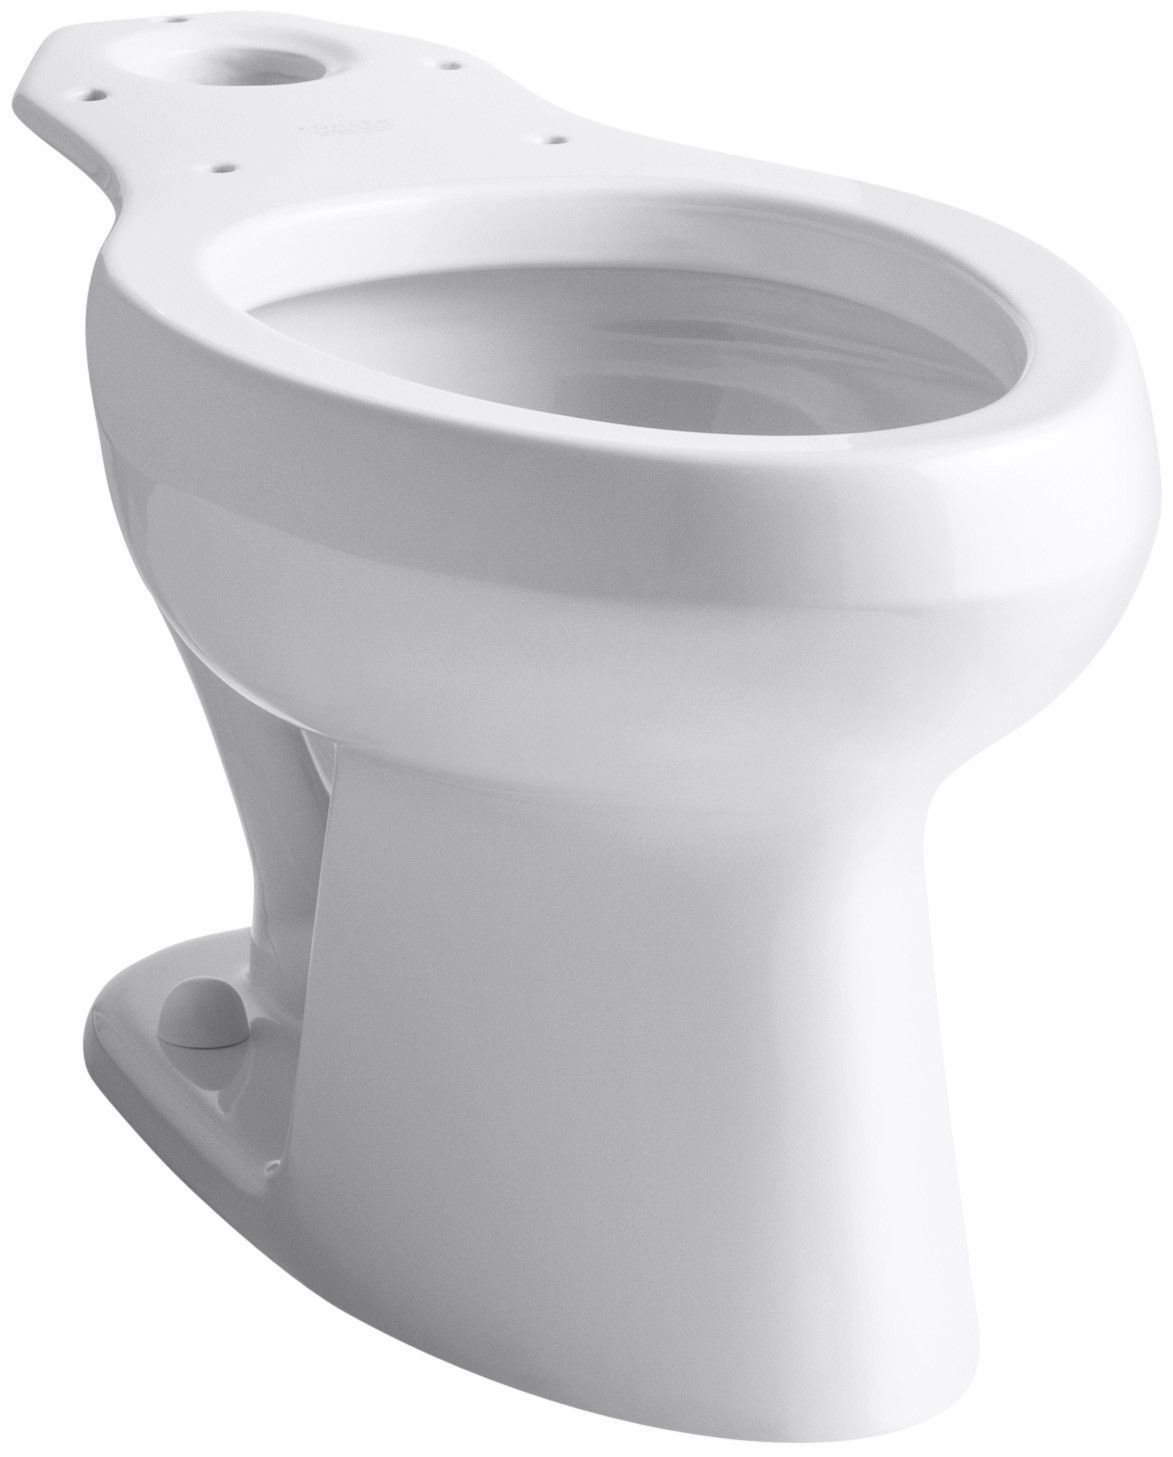 Wellworth Toilet Bowl with Pressure Lite Flushing Technology, Less Seat